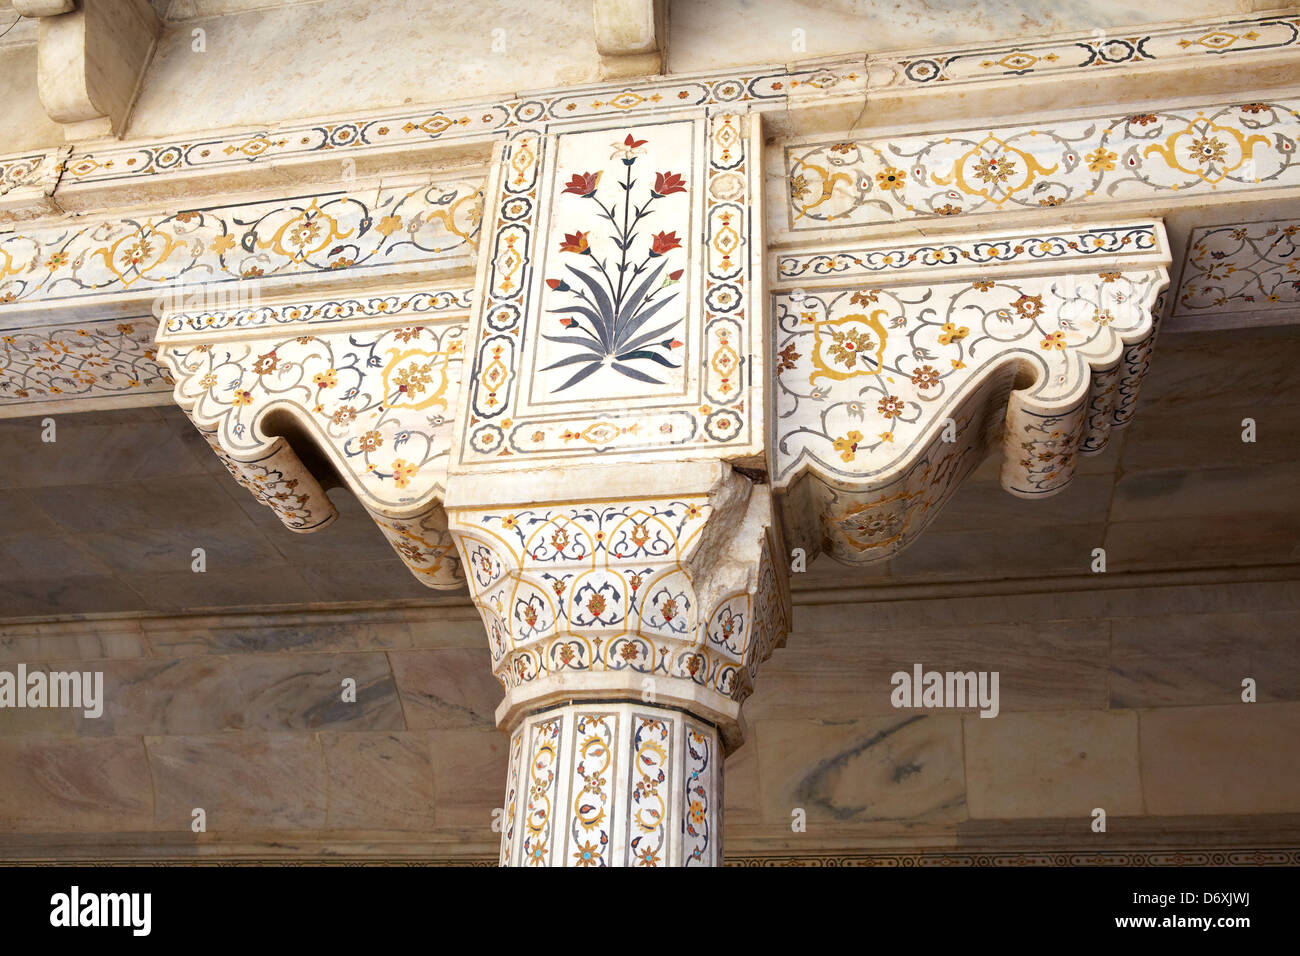 Agra, Red Fort -  detail of decorative stone marble column heads, interior of the central pavilion of Red Fort, - Stock Image